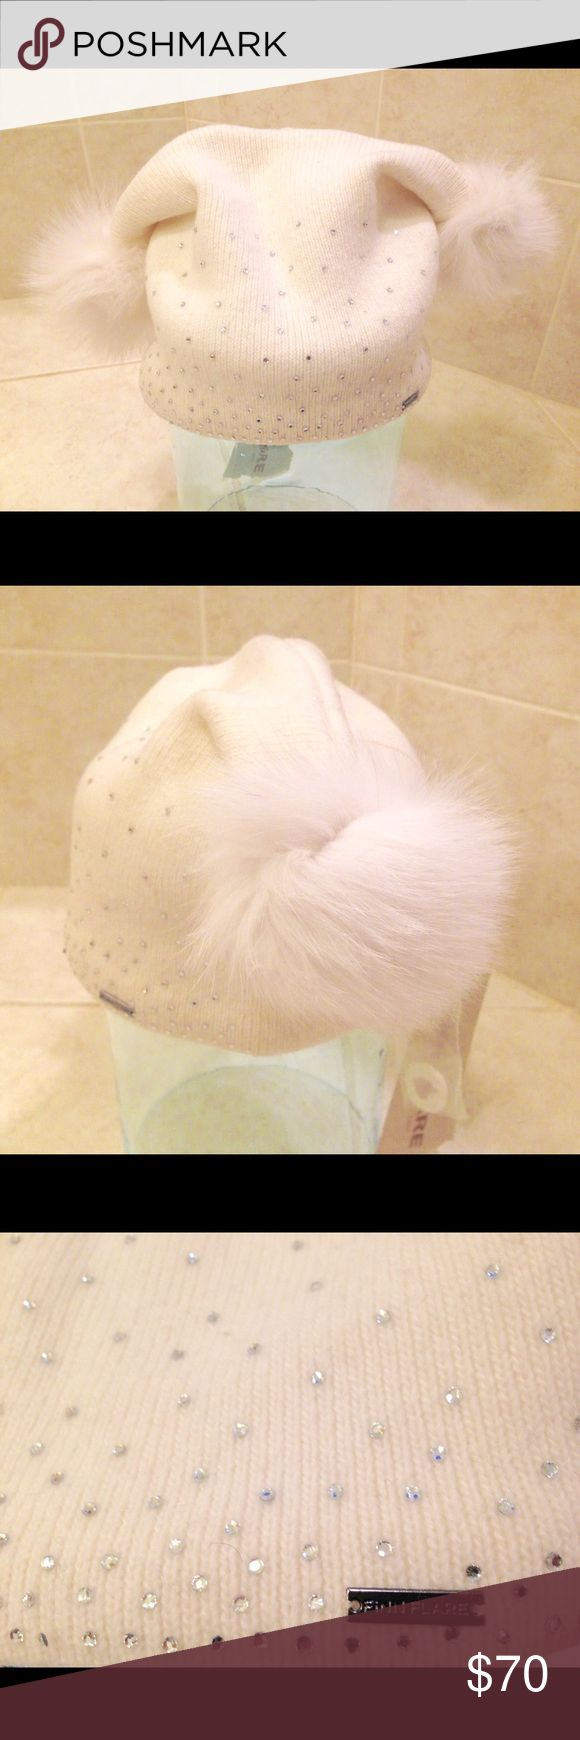 Modern winter hat Gorgeous Russian winter hat with crystals and real polar fox fur. Brand Finn Flare. Very soft and worn, perfect for winter! 38% wool, 32% polyamide, 30% angora. Lining 100% polyester. Decorated with crystals and polar fox fur. Made is Russia. Condition new with a tag Accessories Hats